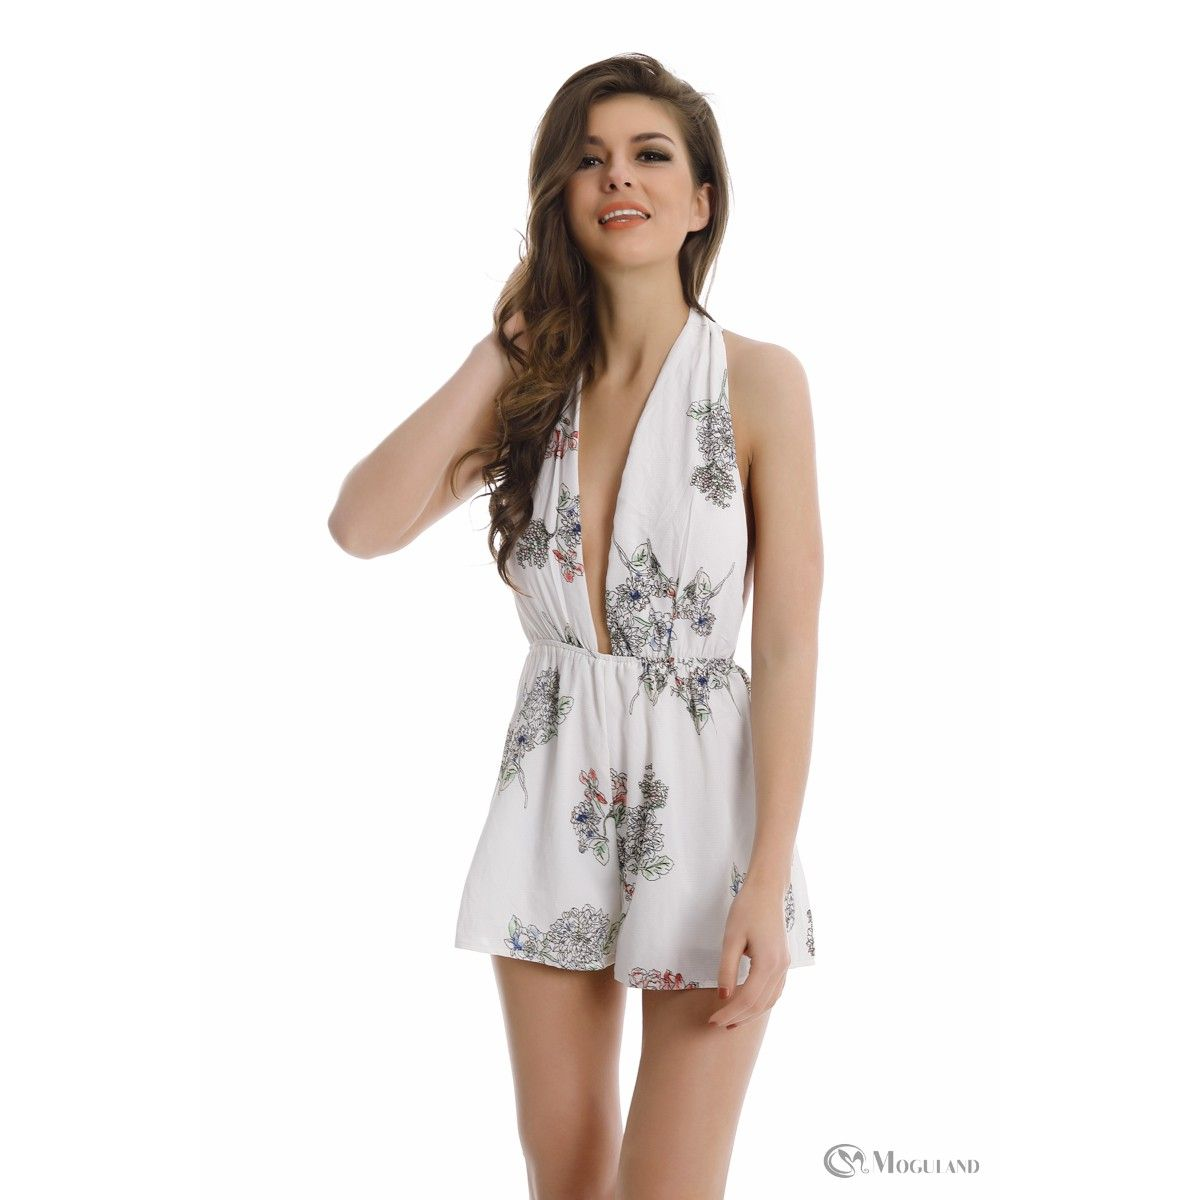 6a41e2ac9a Ladies white floral print plunge halterneck playsuit wholesale - new  in  playsuits - Women s Wholesale Clothing Supplier